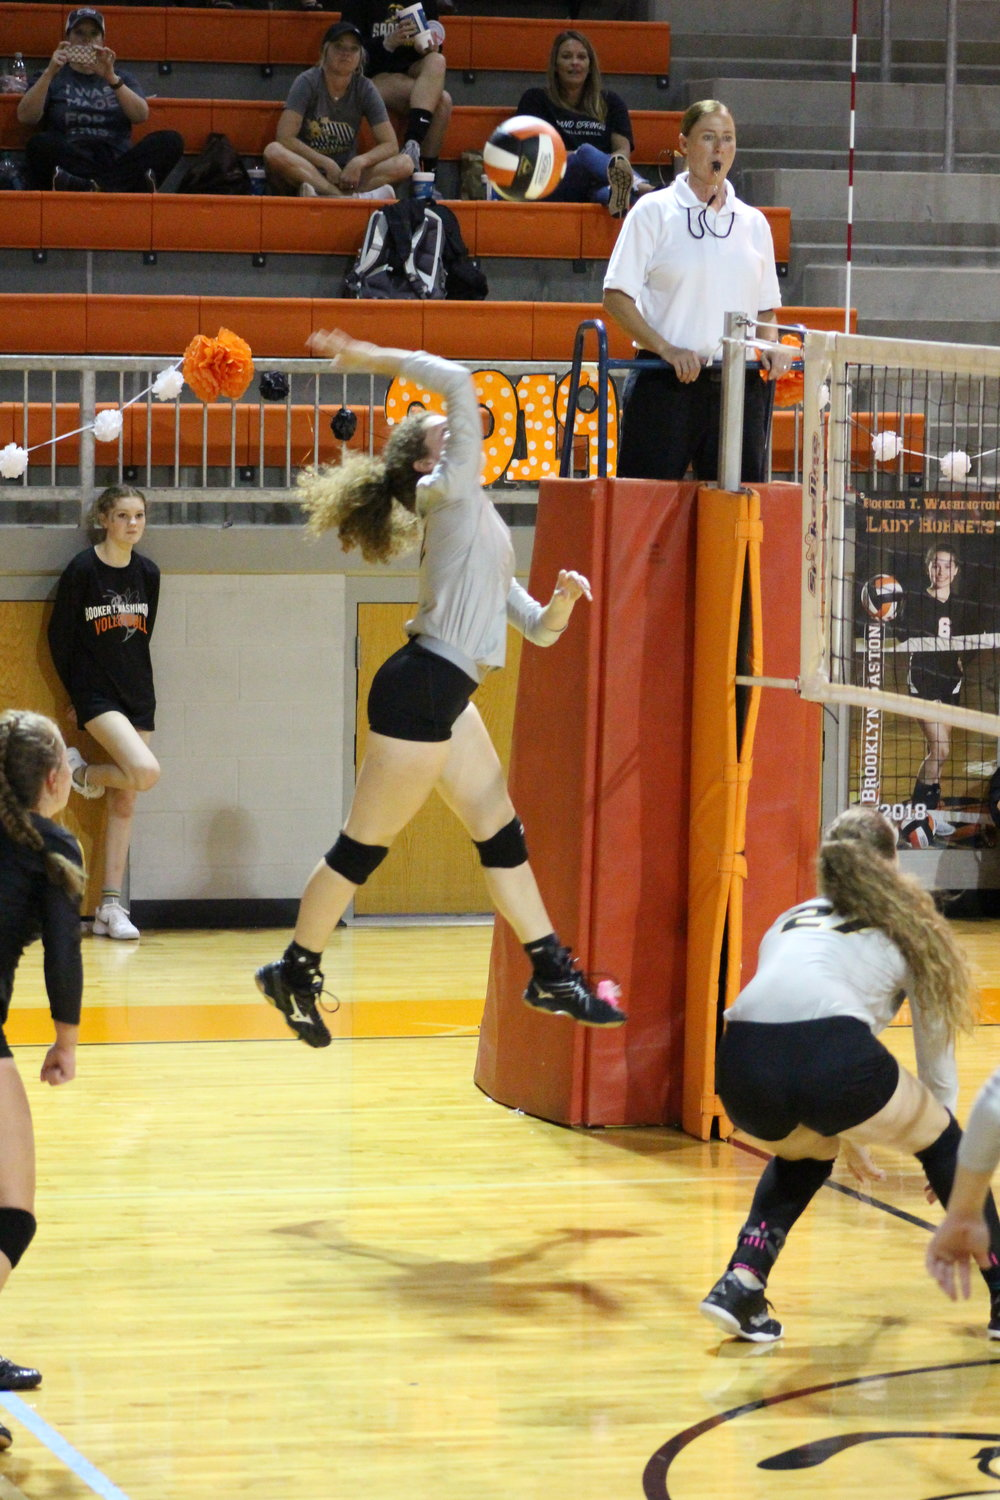 Lady Sandite Volleyball Sandite Pride News